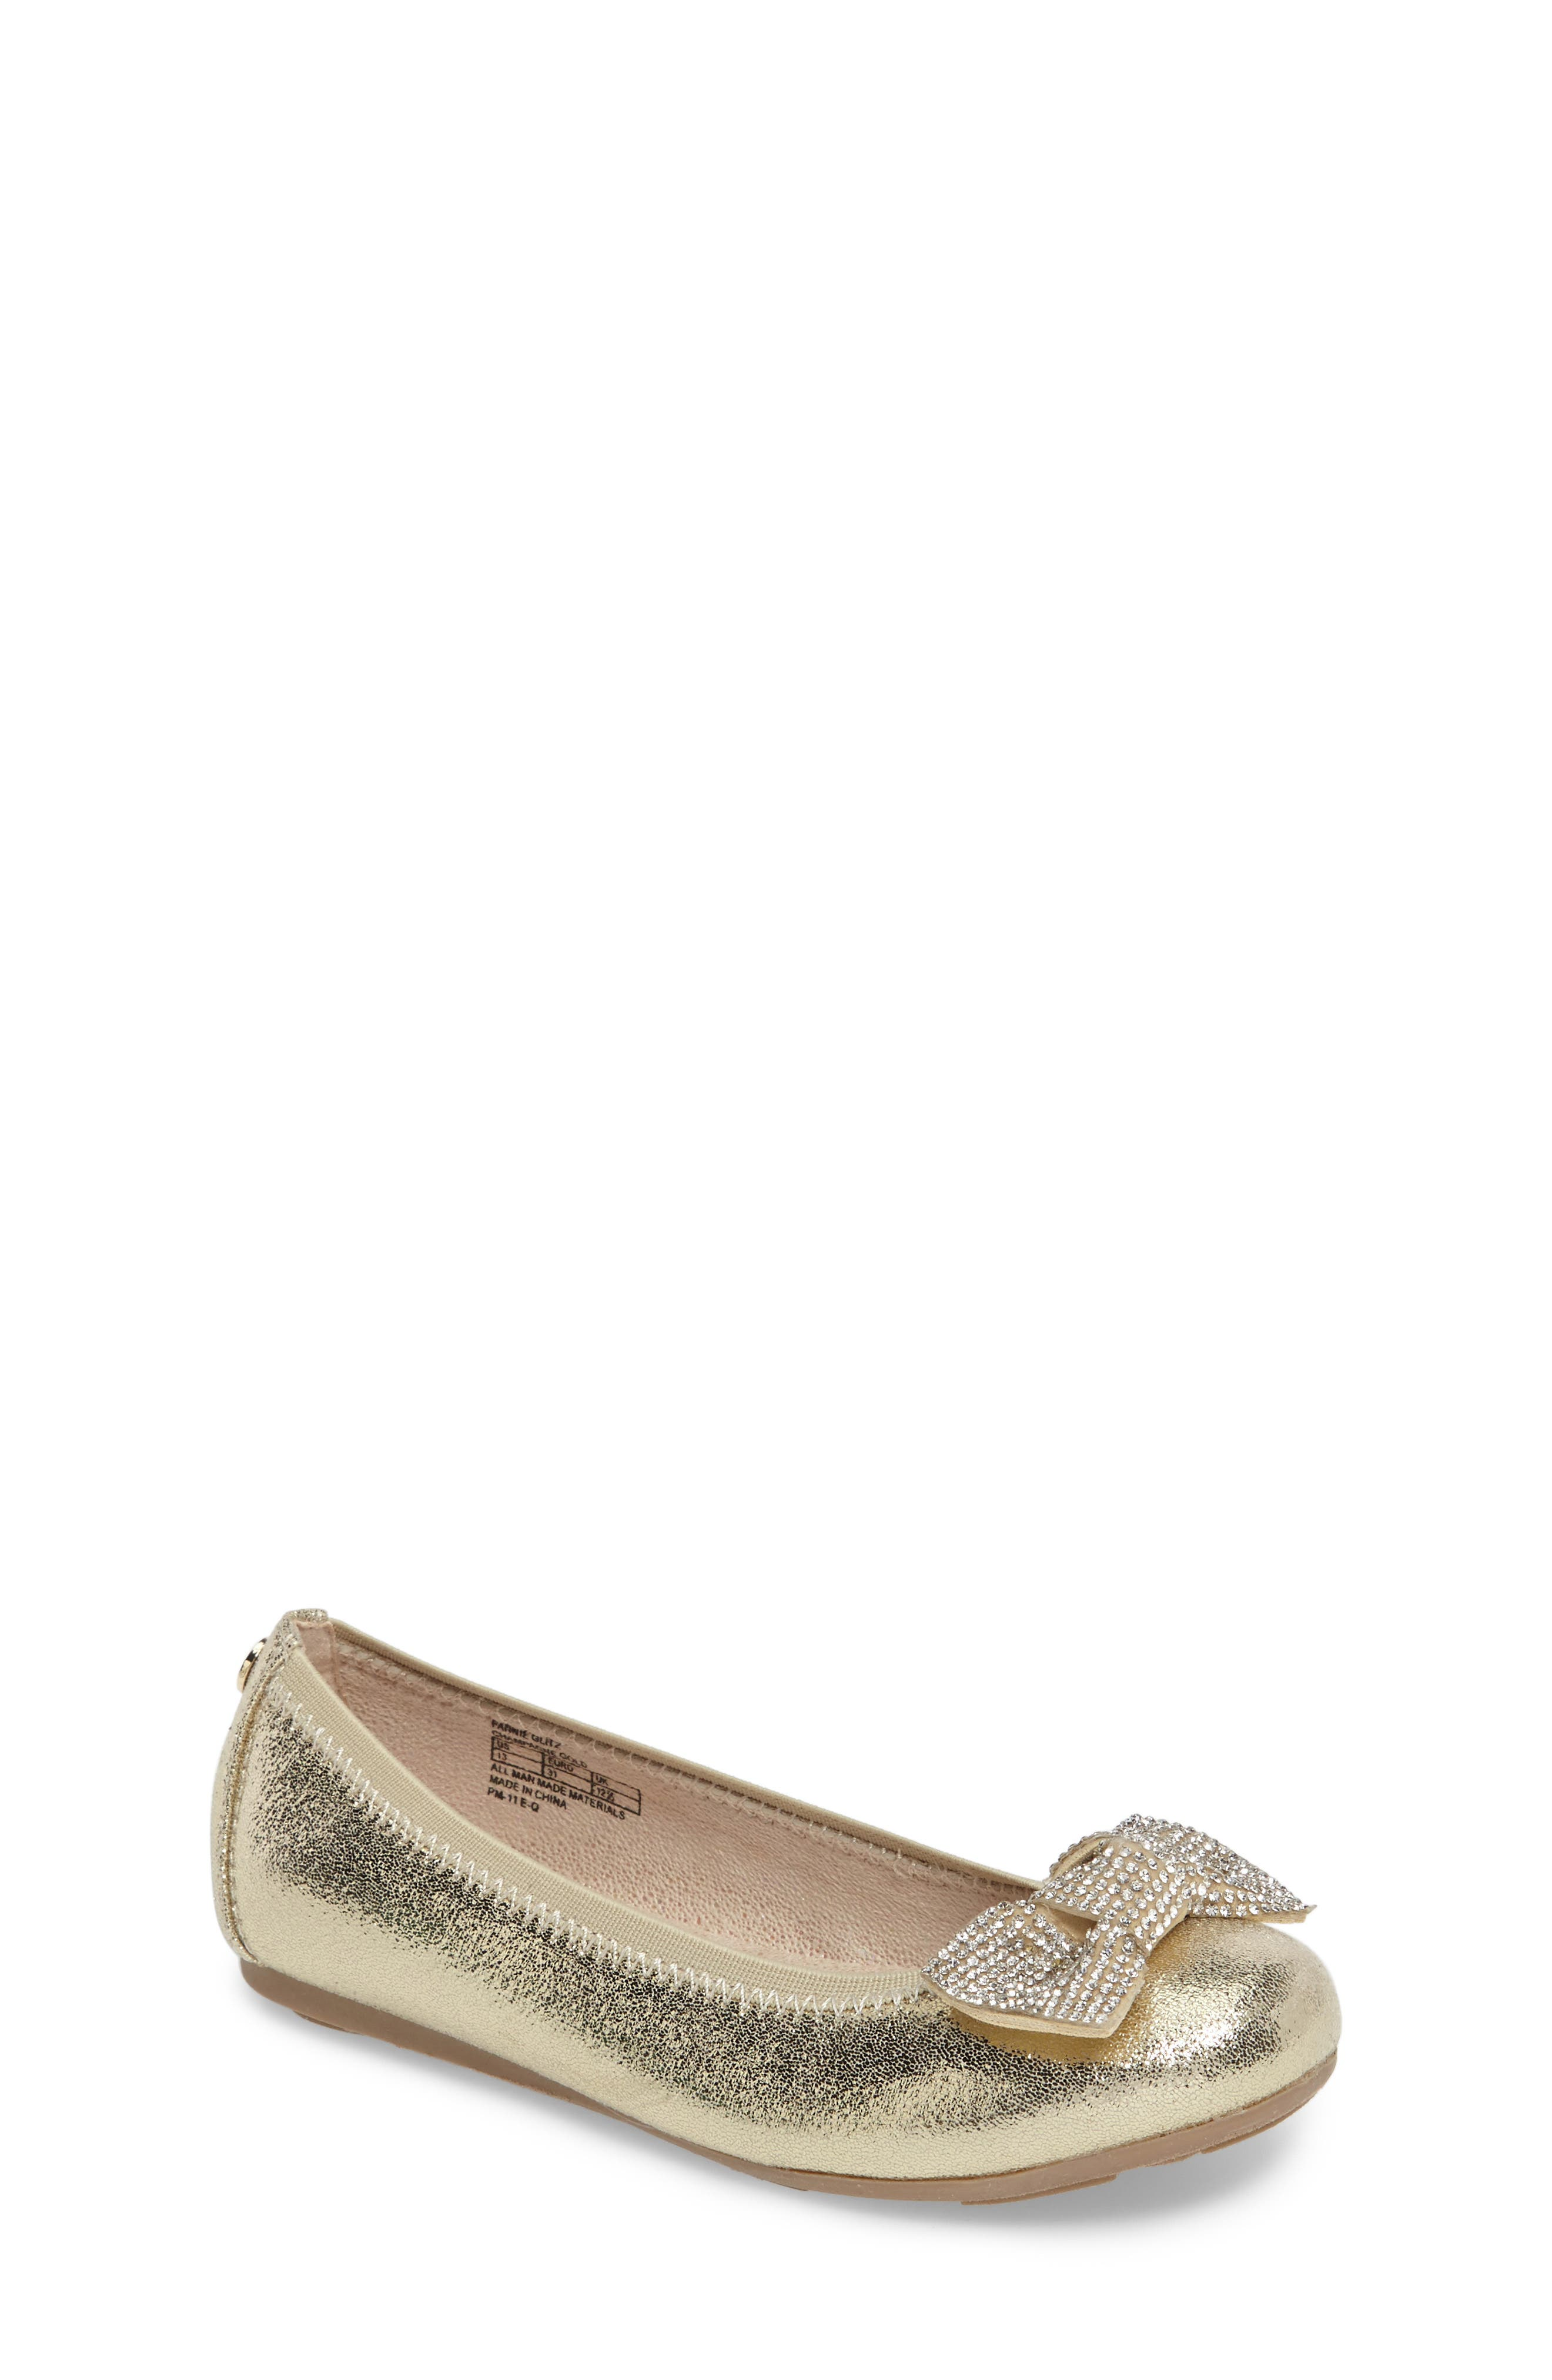 Stuart Weitzman Fannie Glitz Ballet Flat (Toddler, Little Kid & Big Kid)